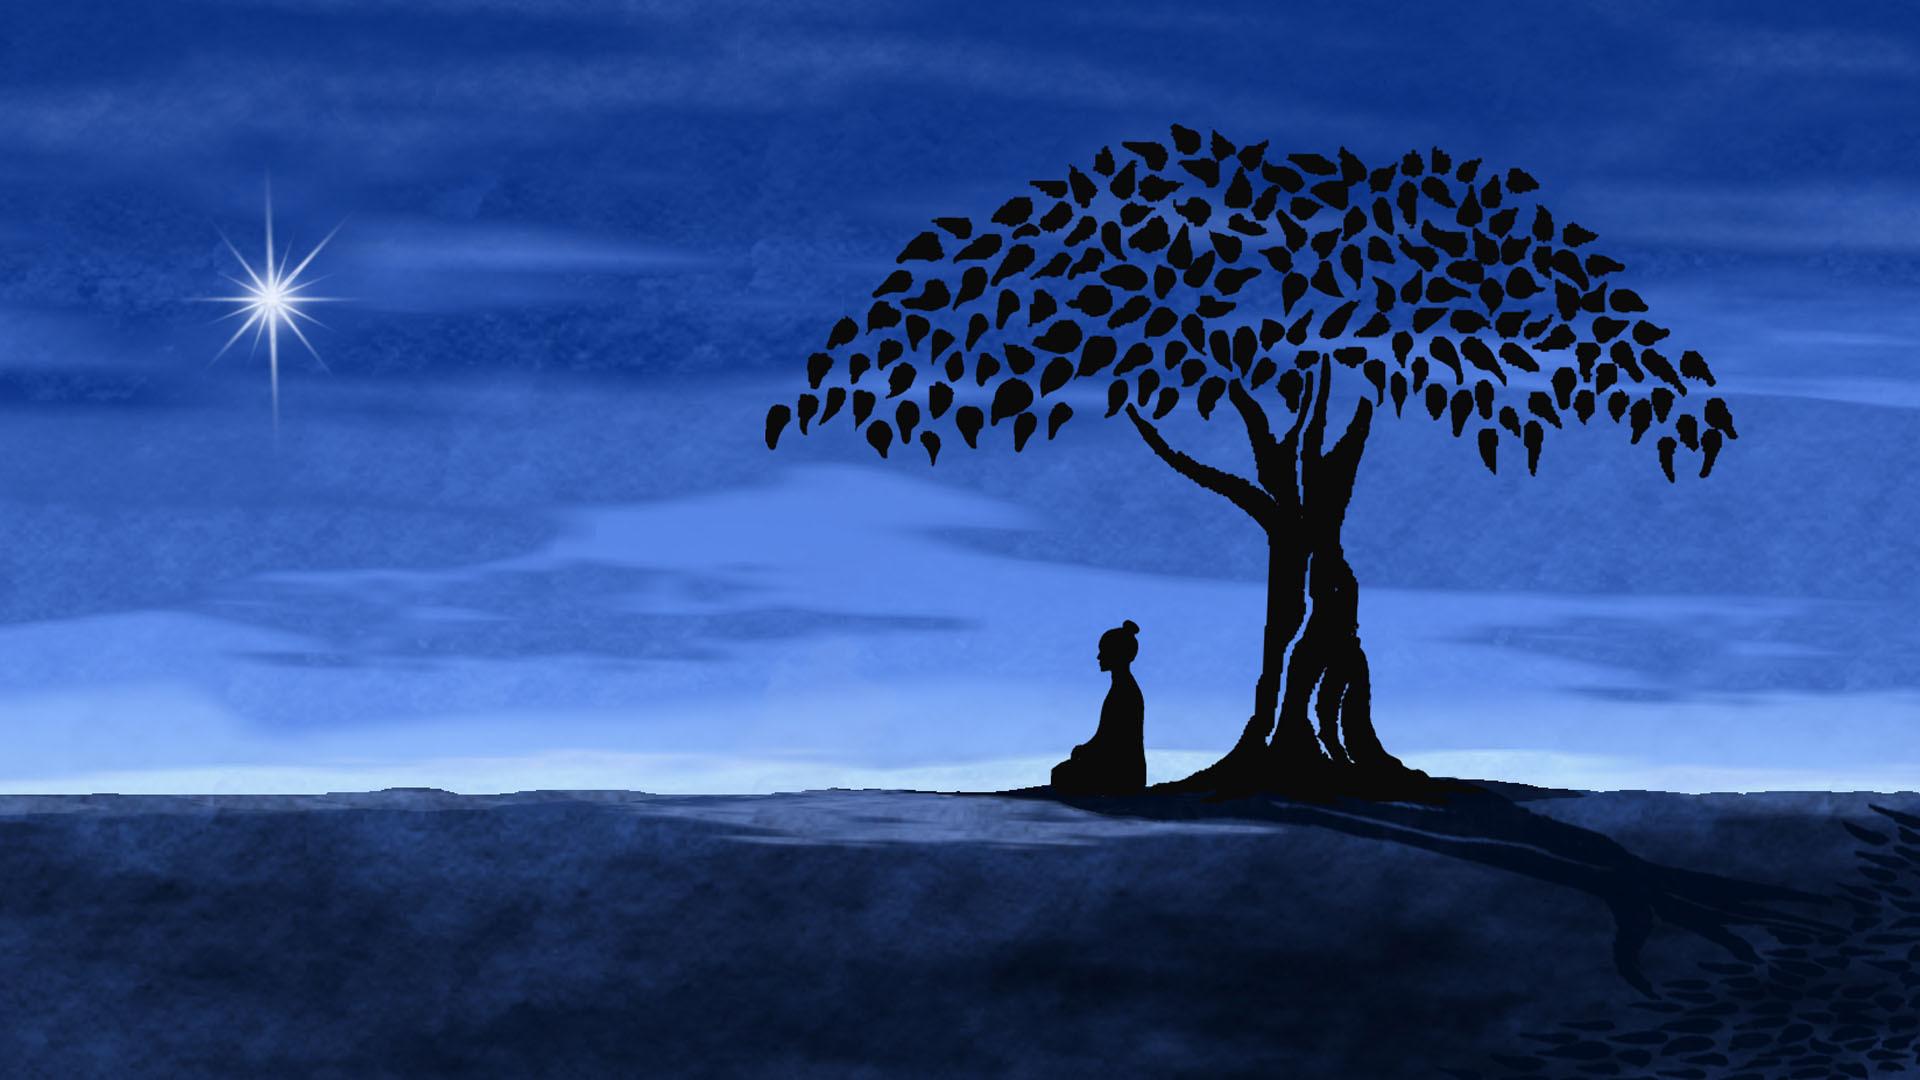 Meditation Hd Posted By Ryan Sellers